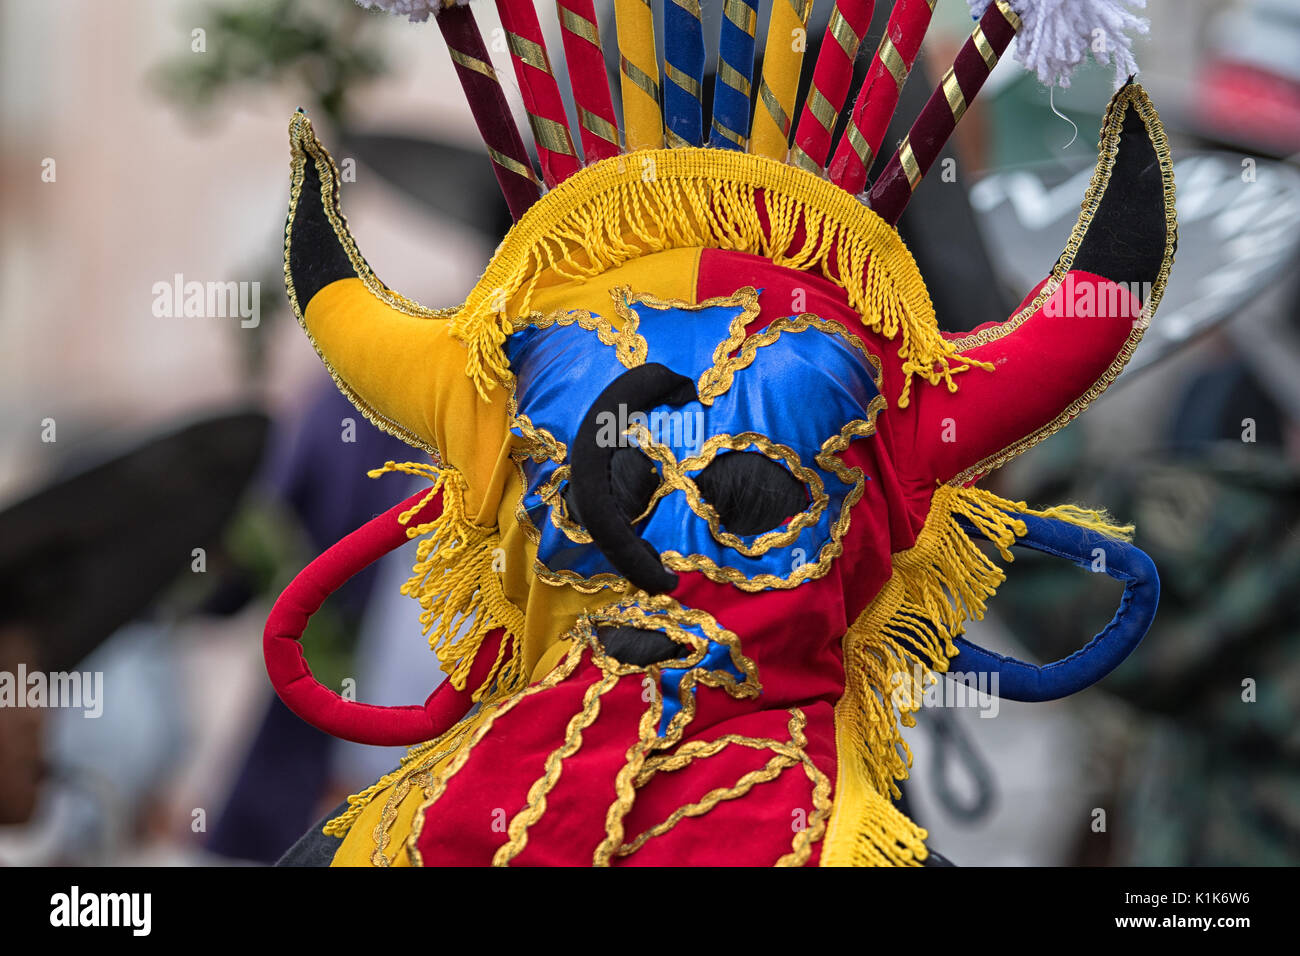 traditional indigenous mask in Ecuador - Stock Image